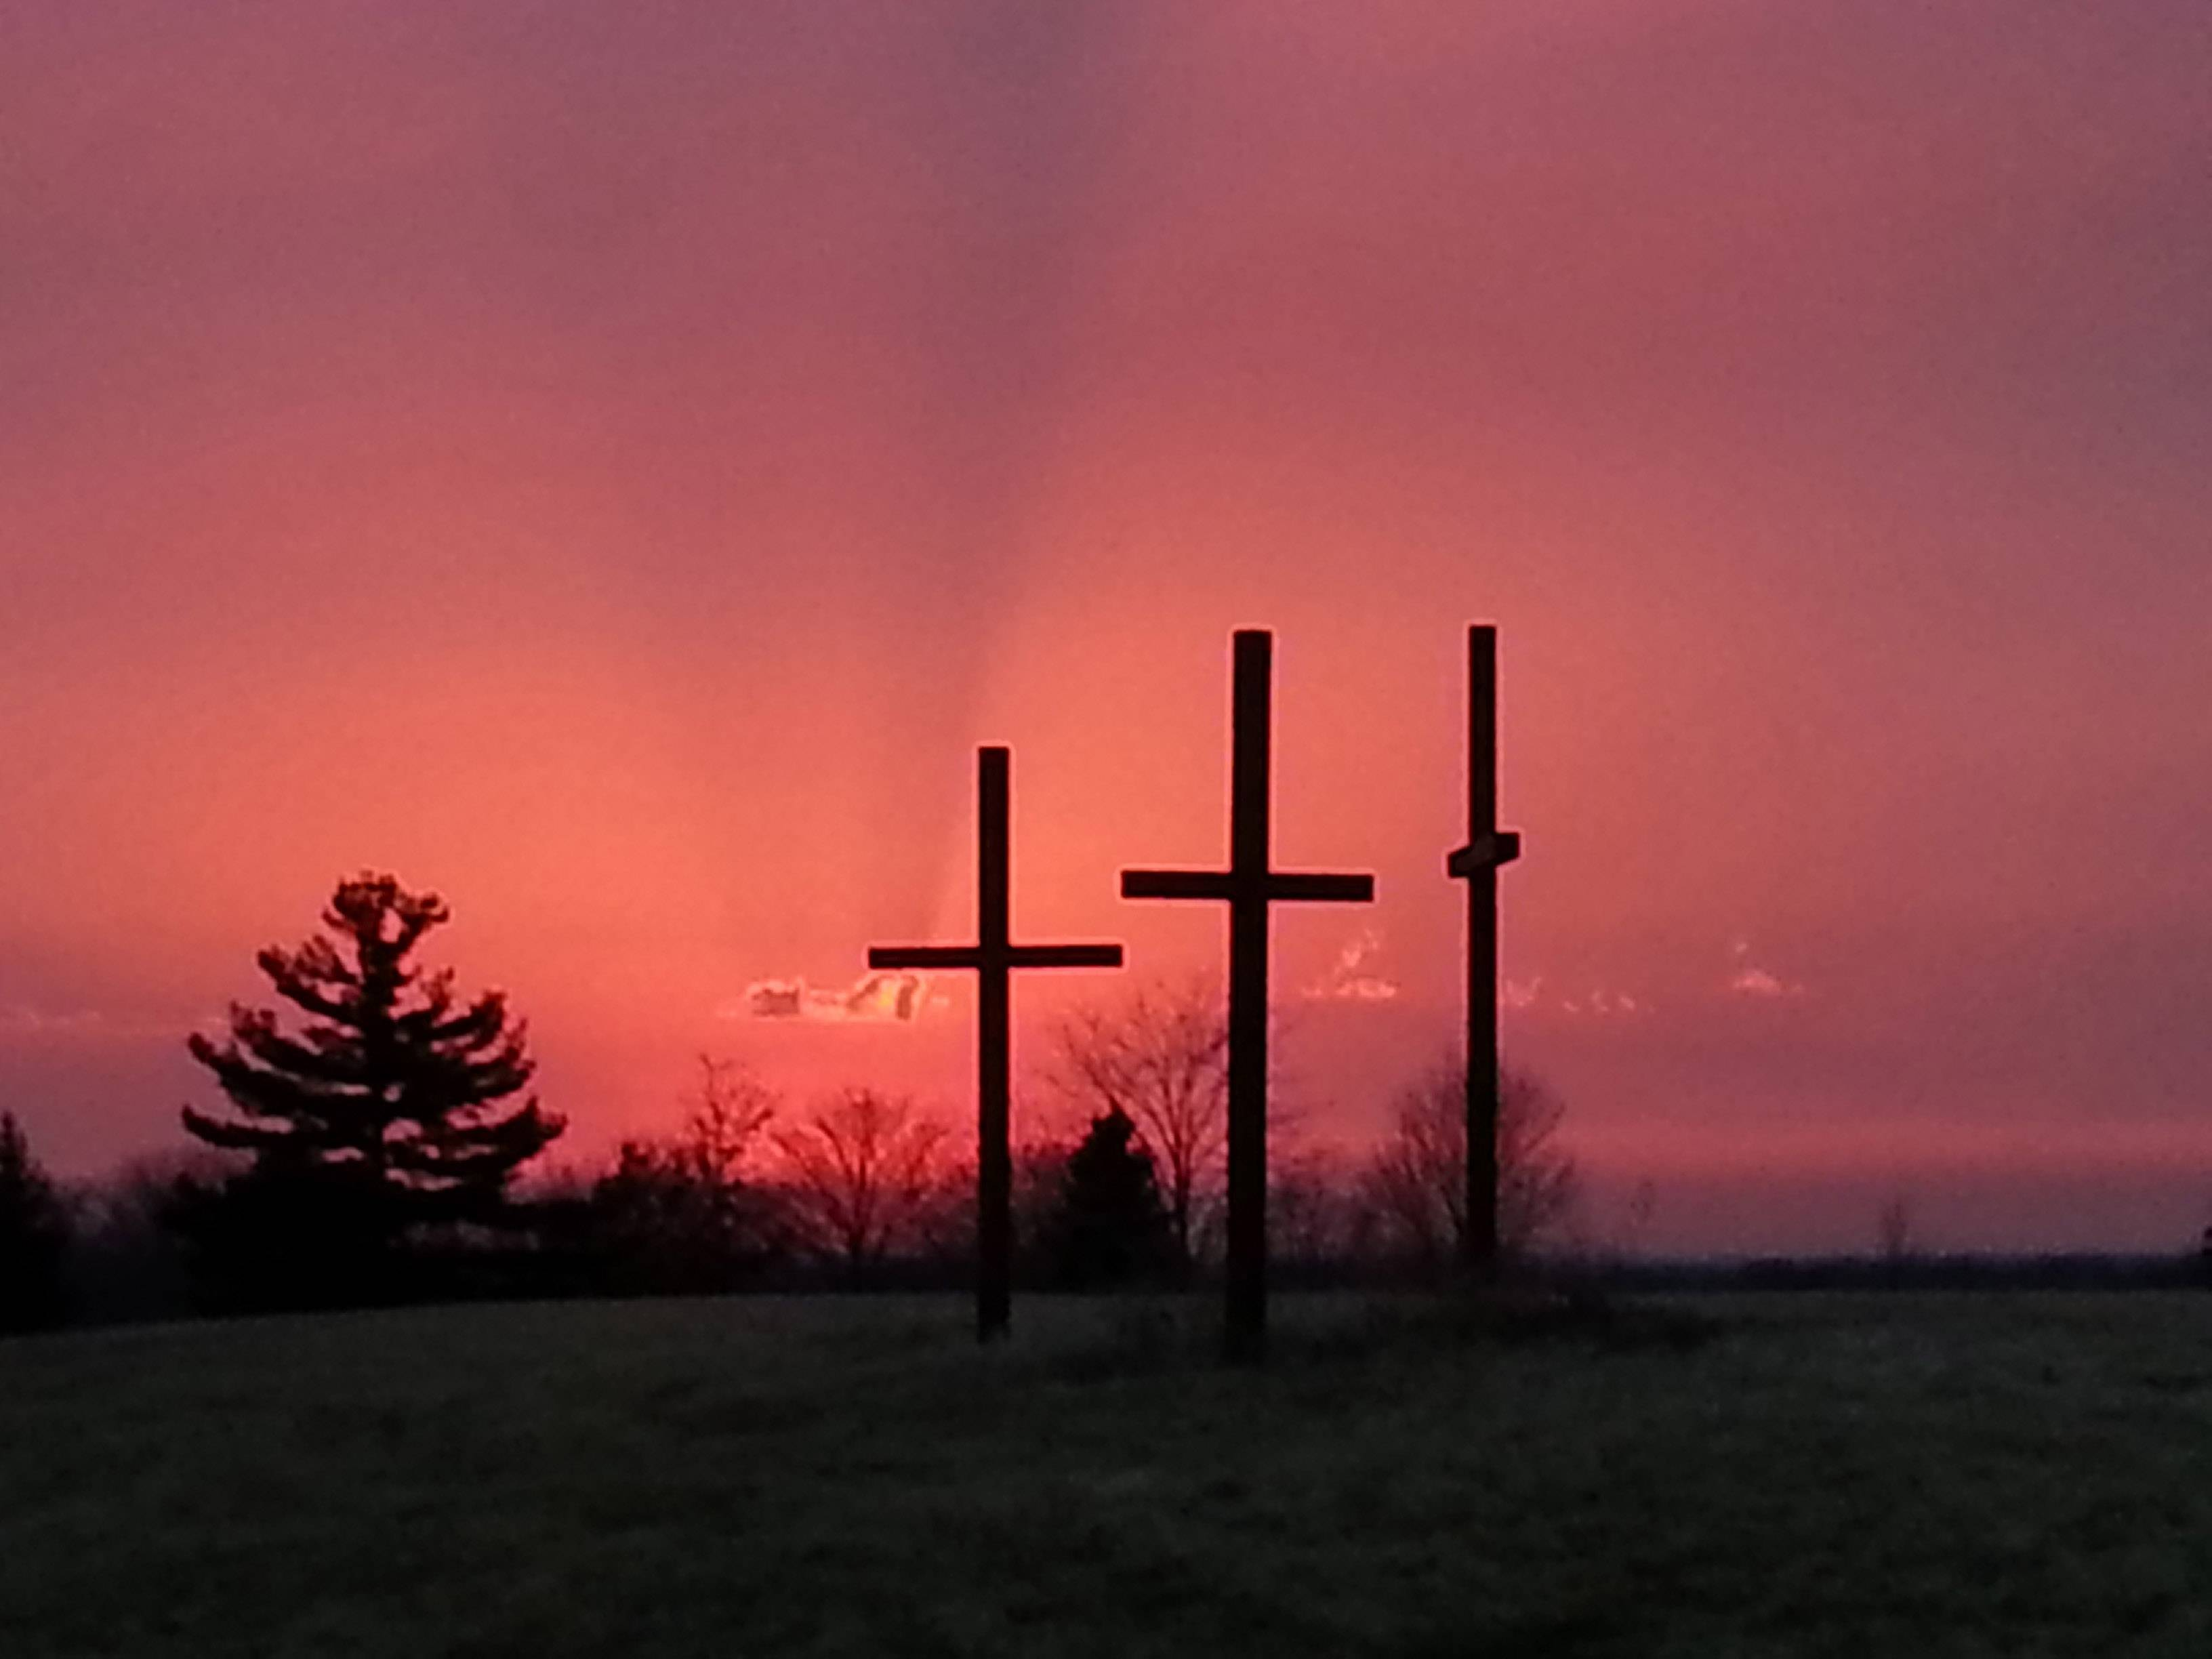 This beautiful sunset behind the trinity of crosses located on Marmion's property caught my eye. The warmth of the glow captured the essence of the season.